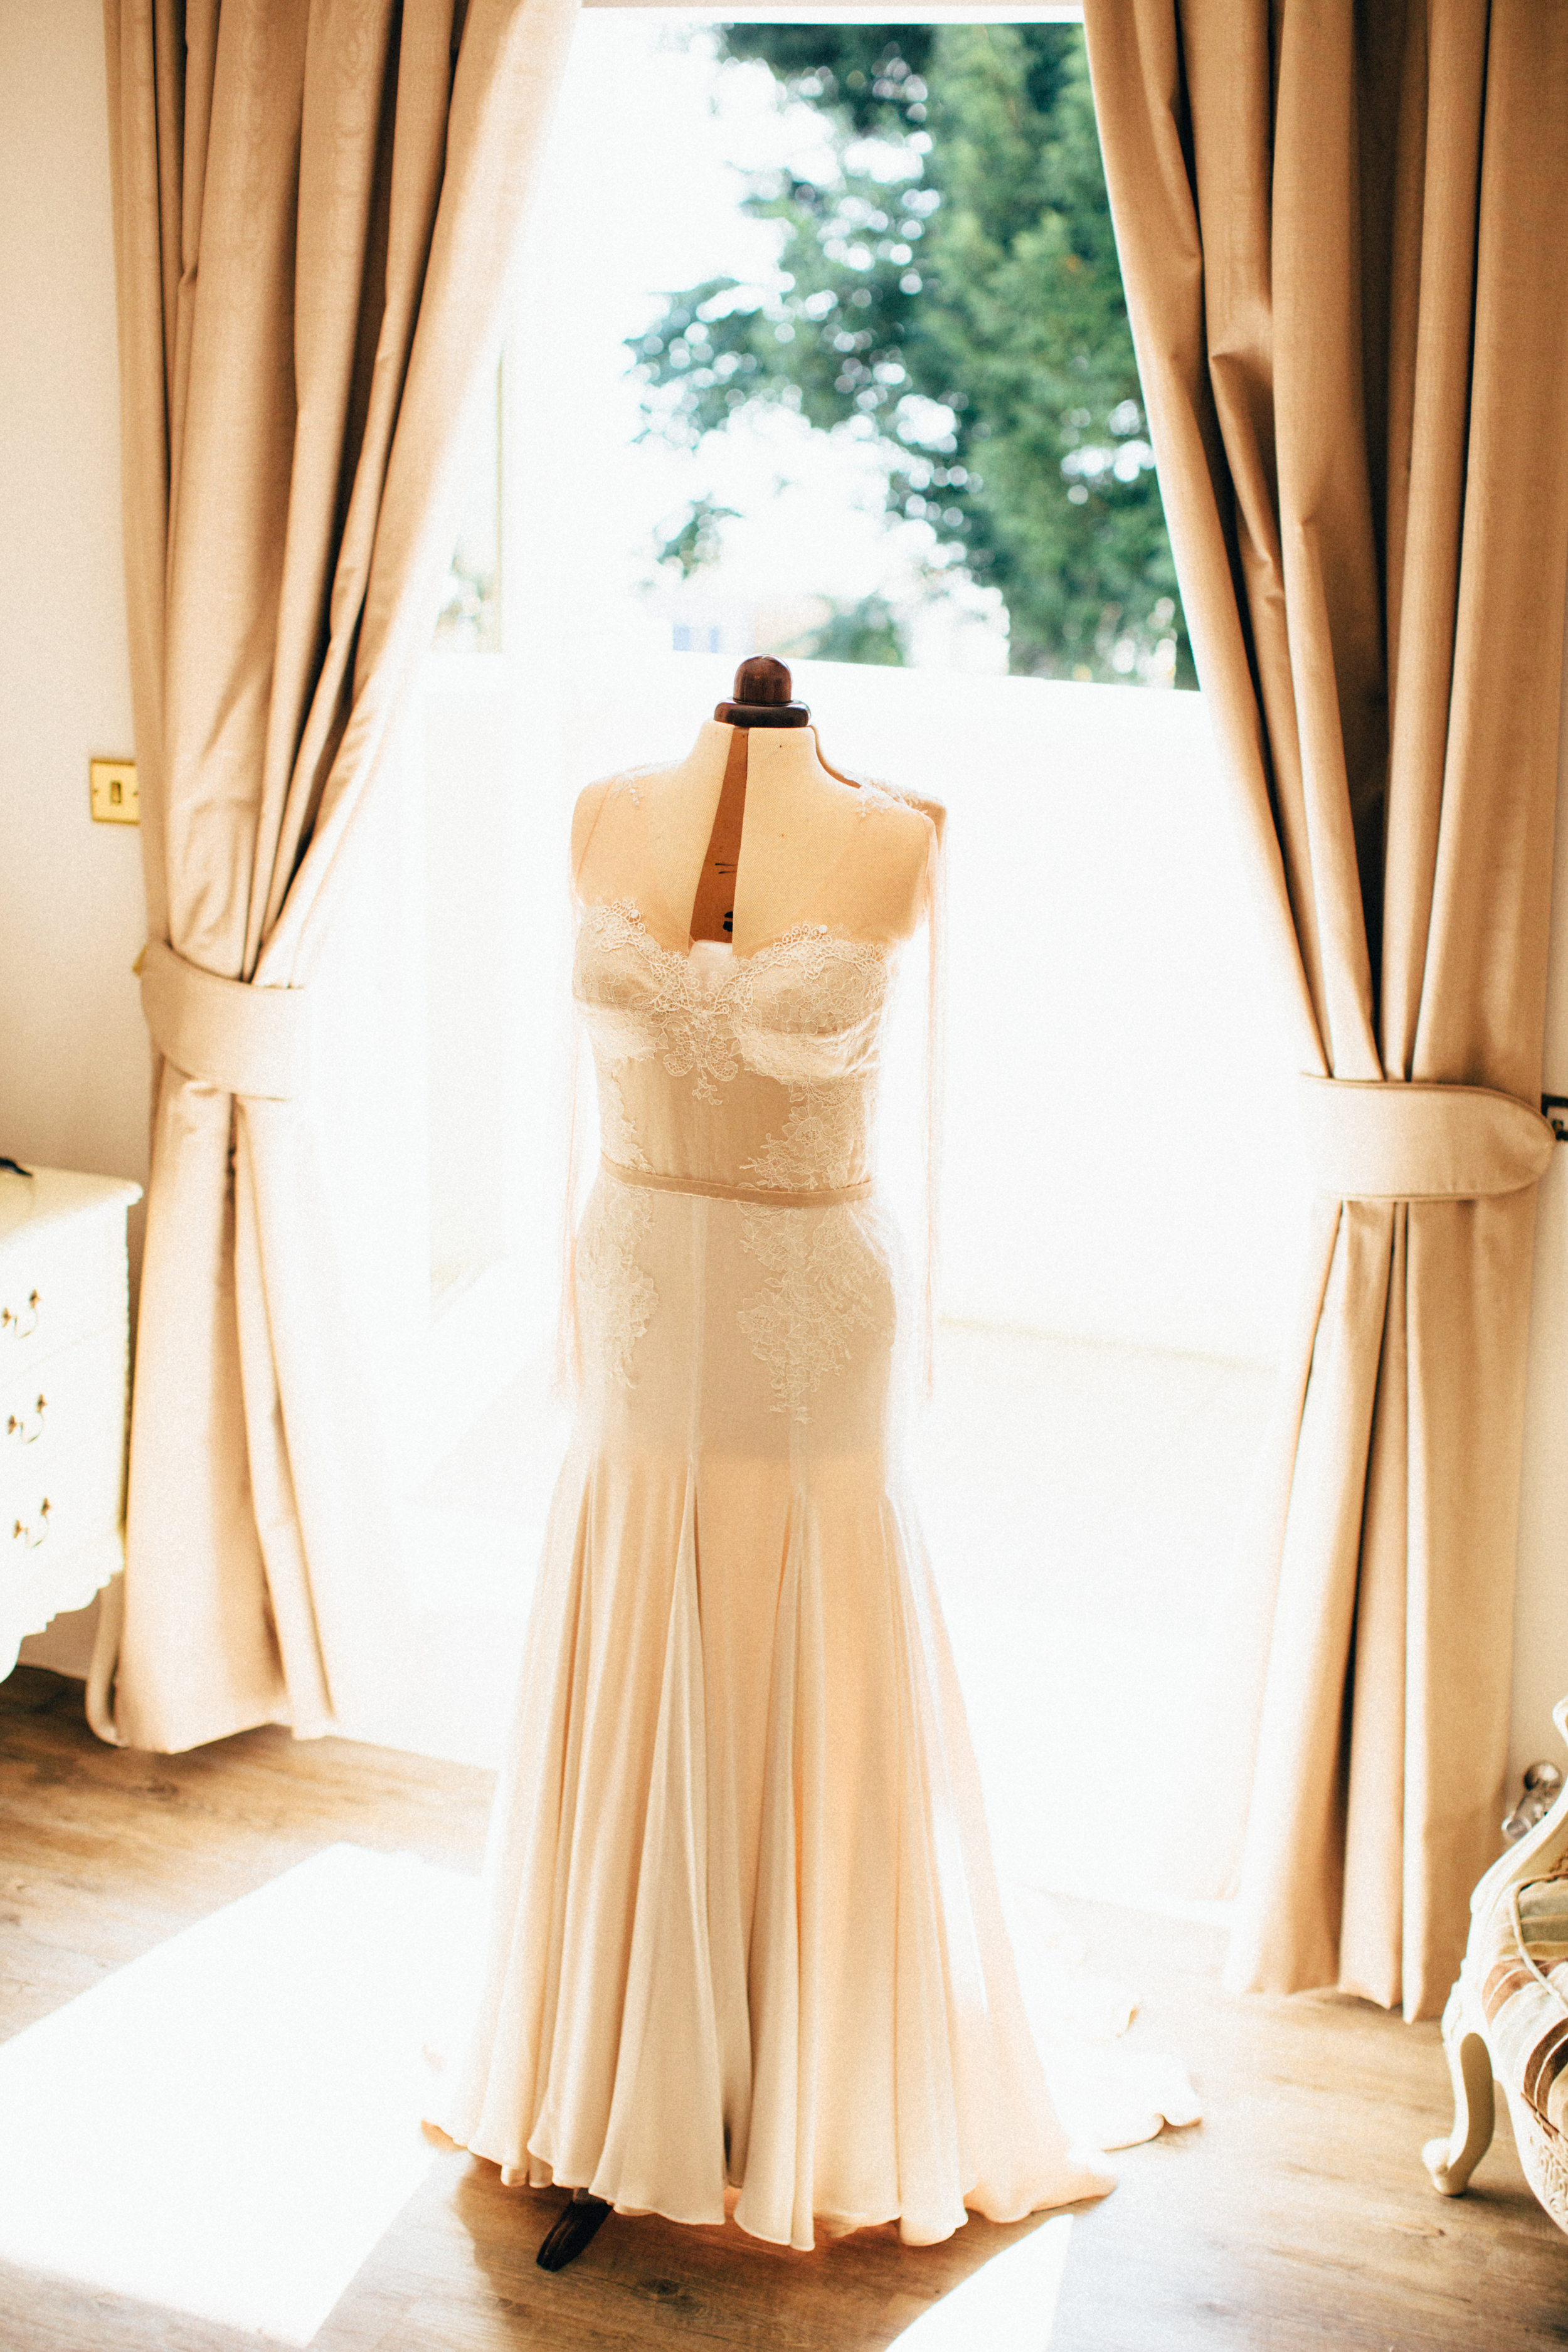 My Dress was made by Kaydia Torrel a local artisan, together we created an ethereal design that would look timeless.